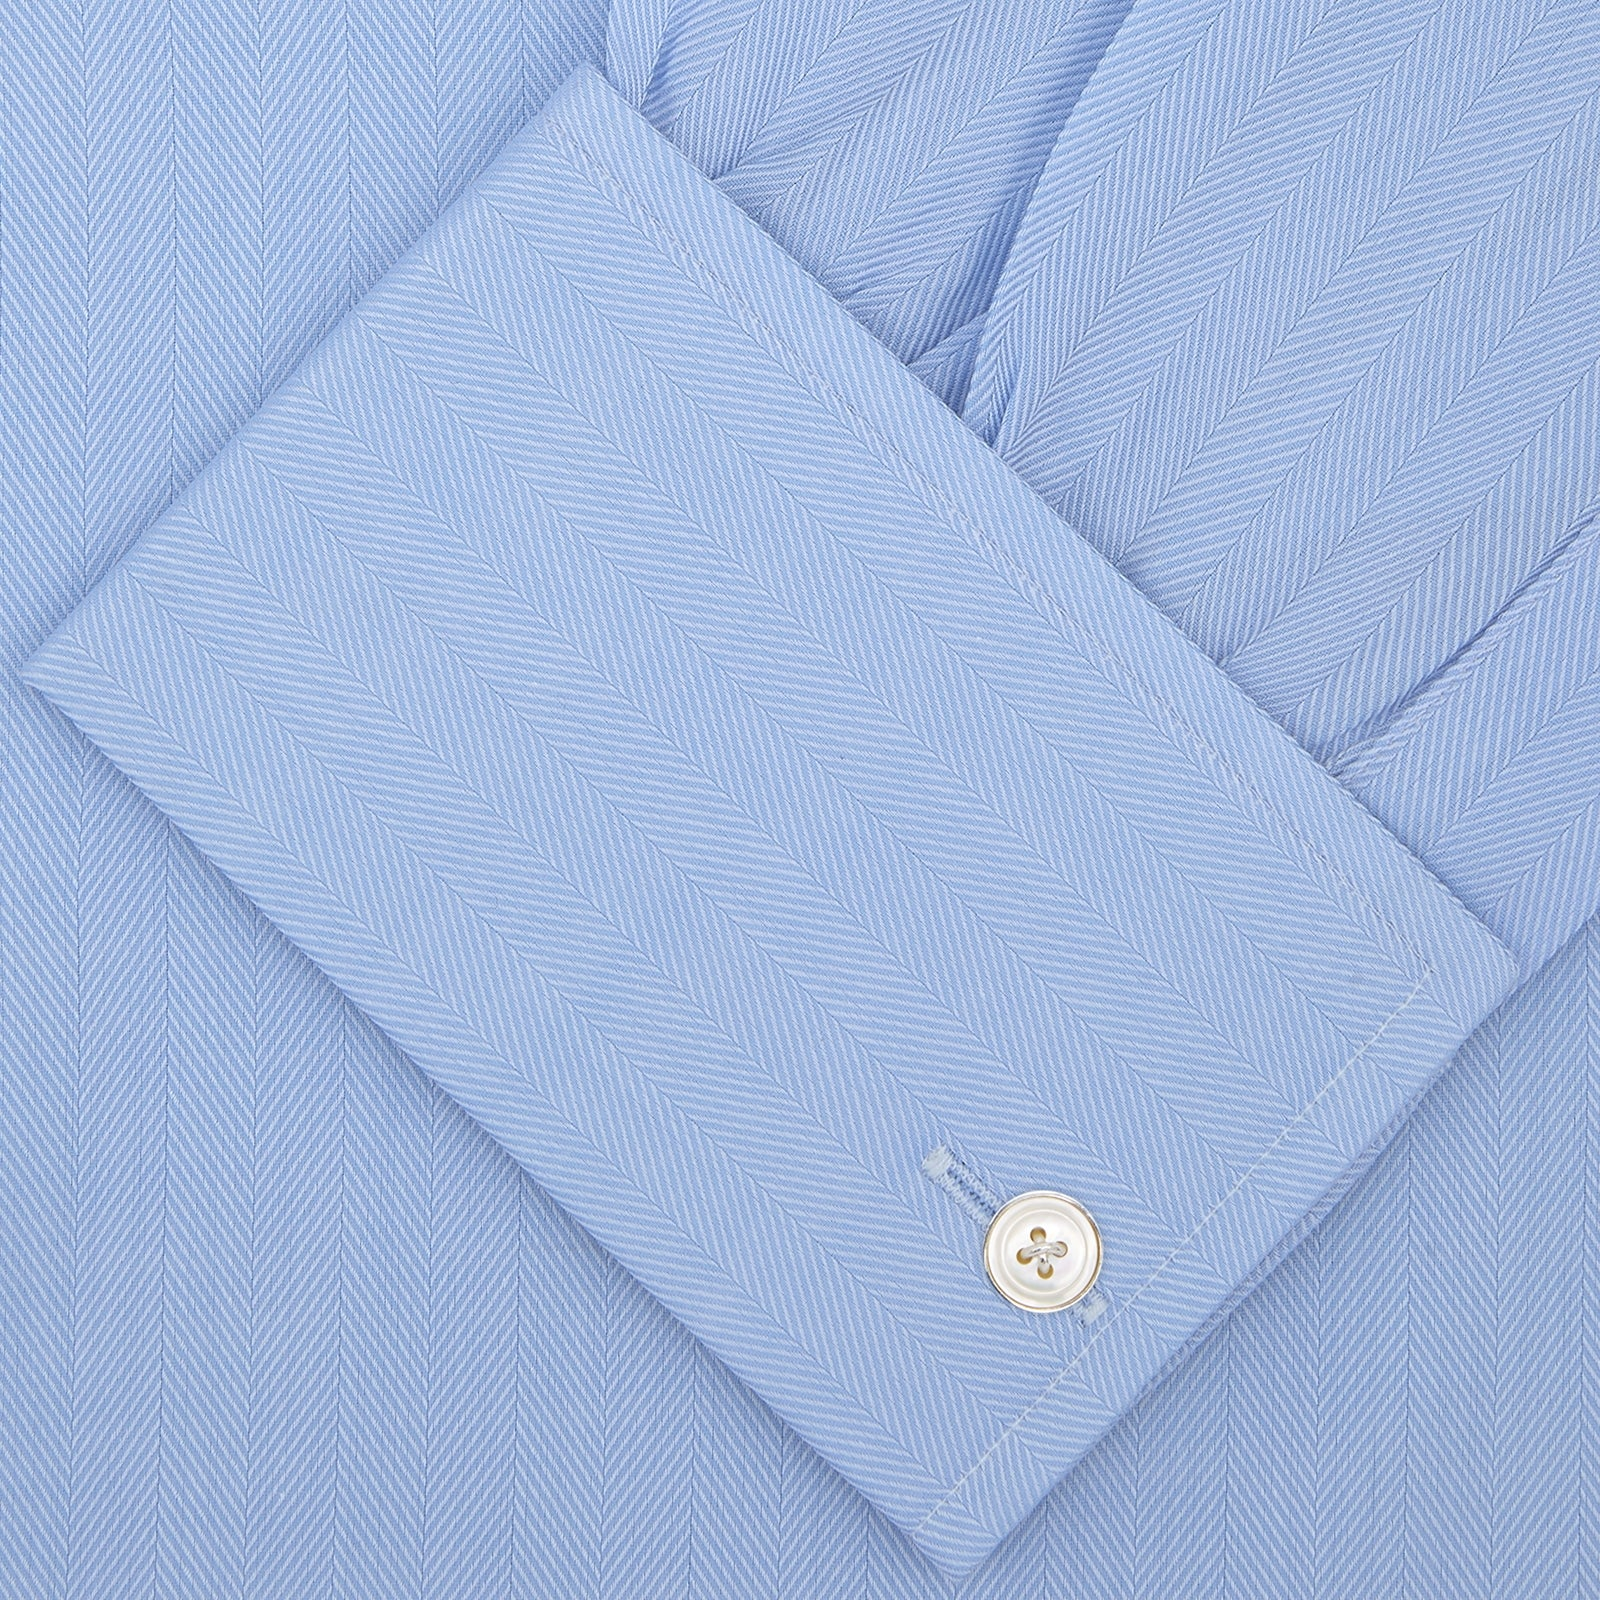 Light Blue Herringbone Superfine Cotton Shirt with T&A Collar and Double Cuffs